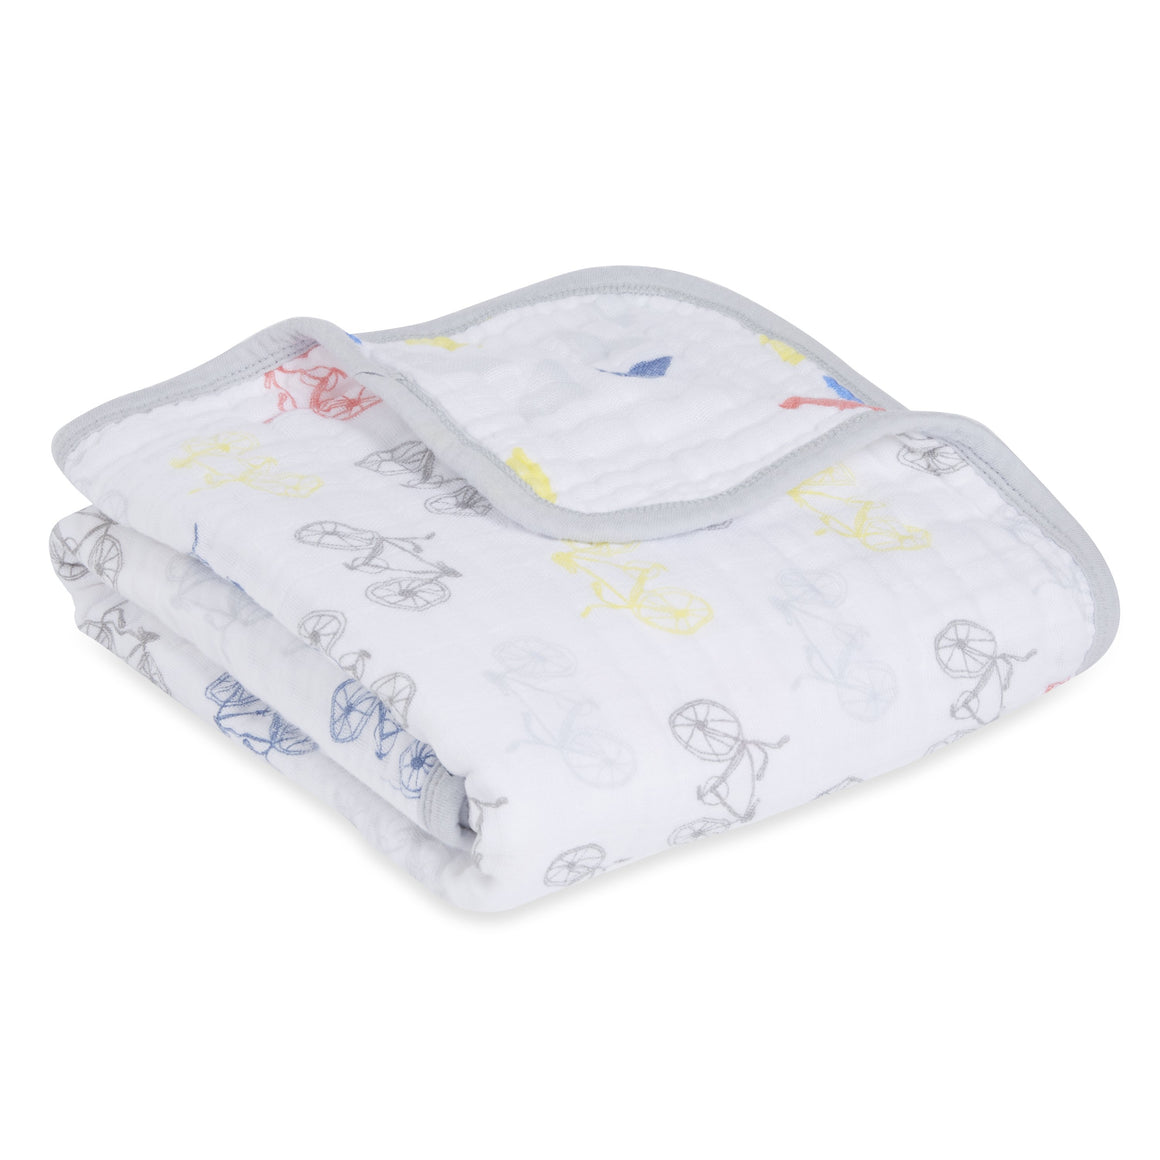 aden + anais leader of the pack 4 layer classic stroller blanket